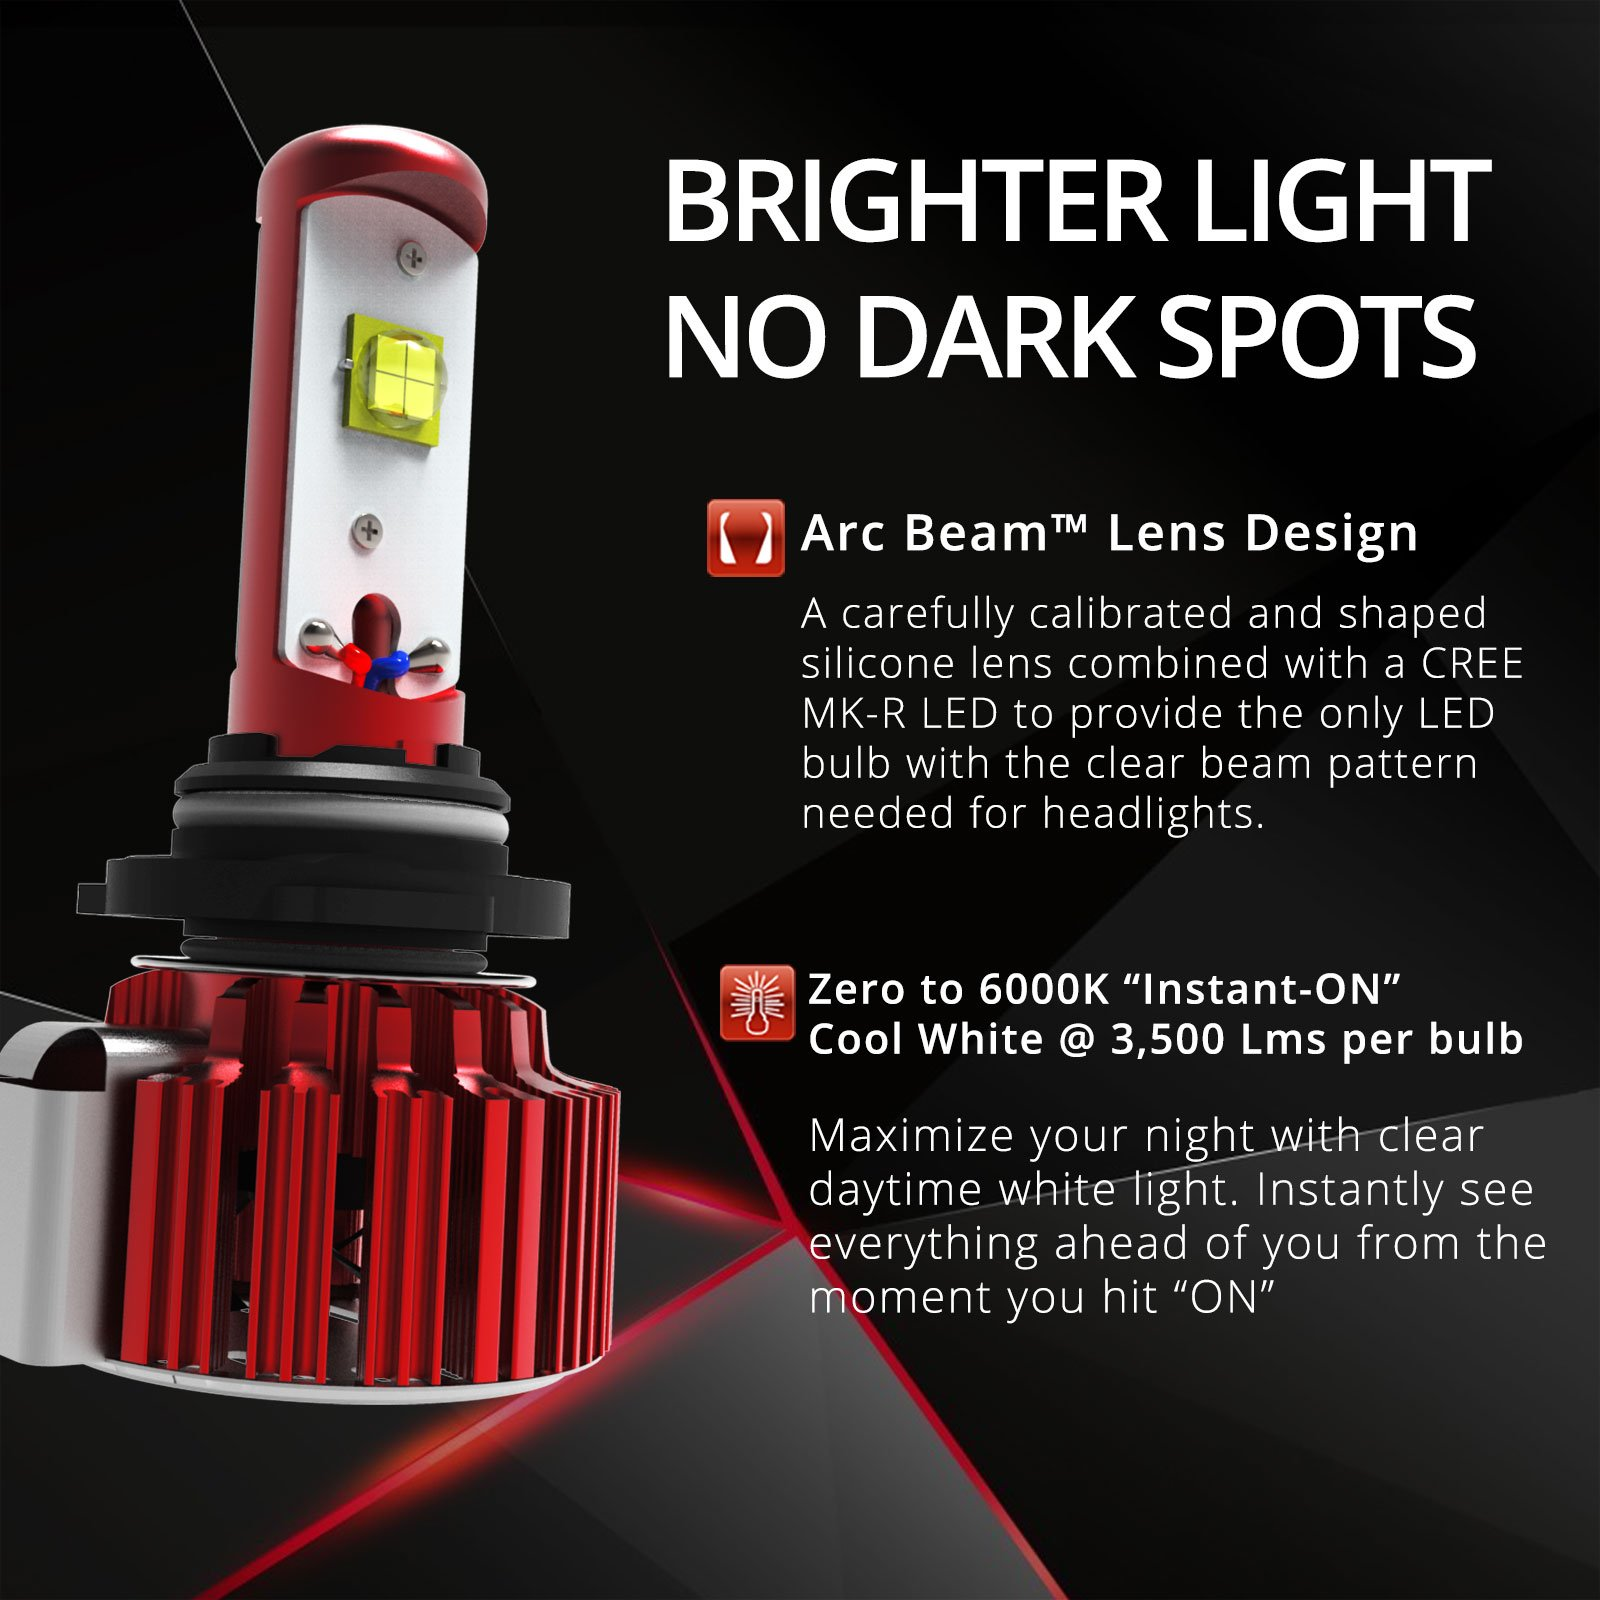 OPT7 Fluxbeam 9007 LED Headlight Bulbs w/TIPM Resistors Kit - 80w 7,000Lm 6K Cool White CREE - 2 Yr Warranty - for Dodge, RAM, Jeep, Chrysler by OPT7 (Image #3)